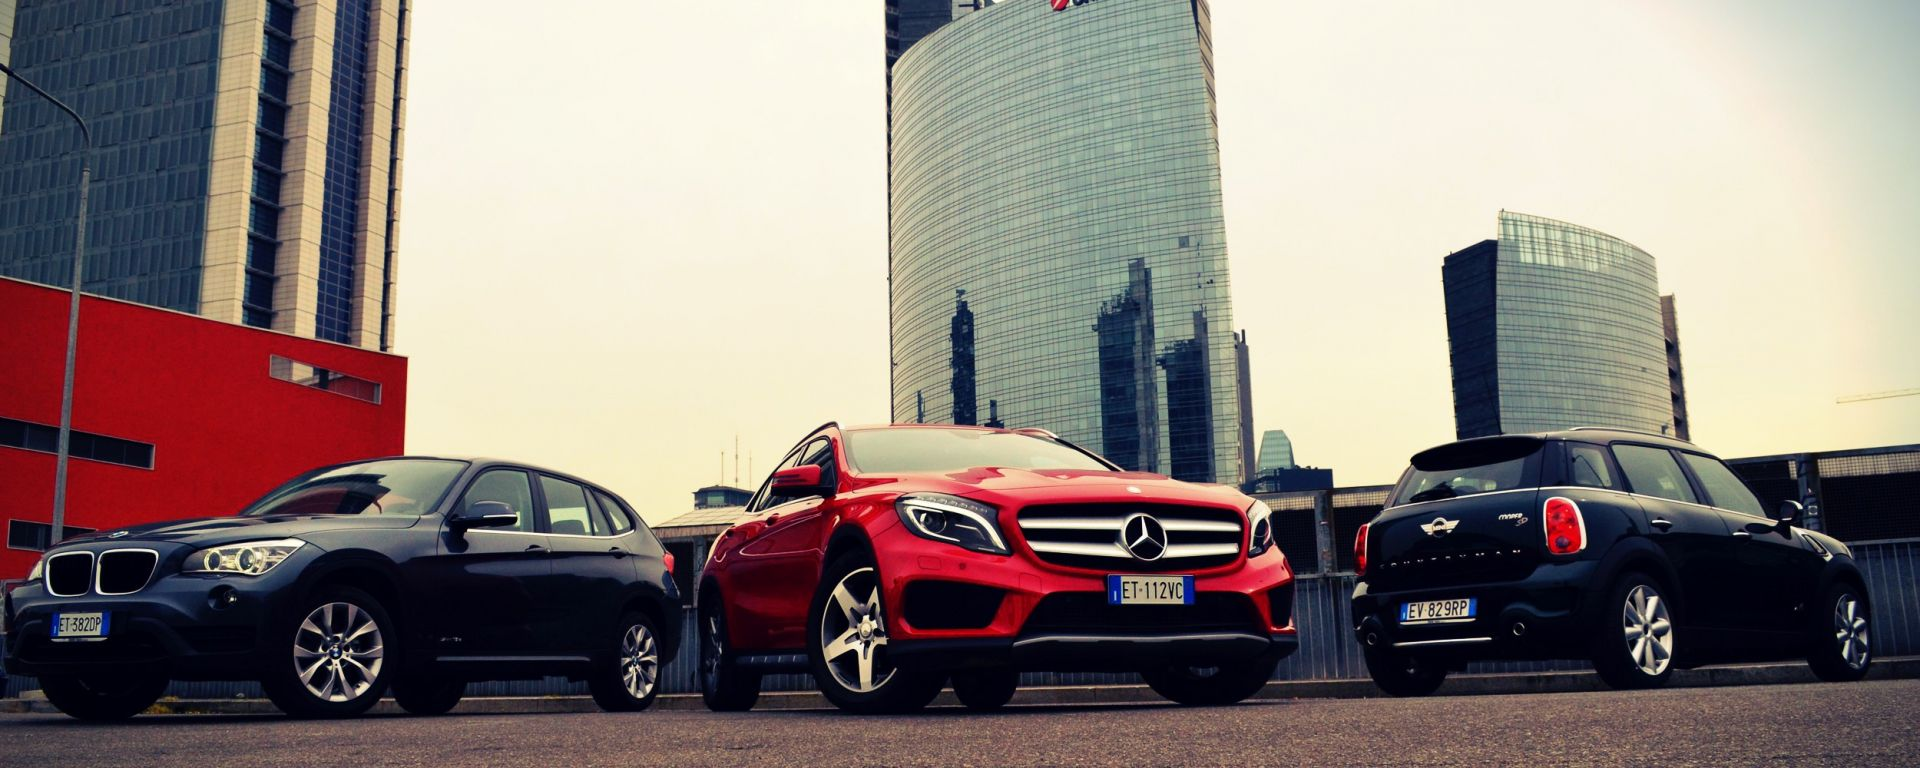 Mercedes GLA vs BMW X1 vs Mini Countryman